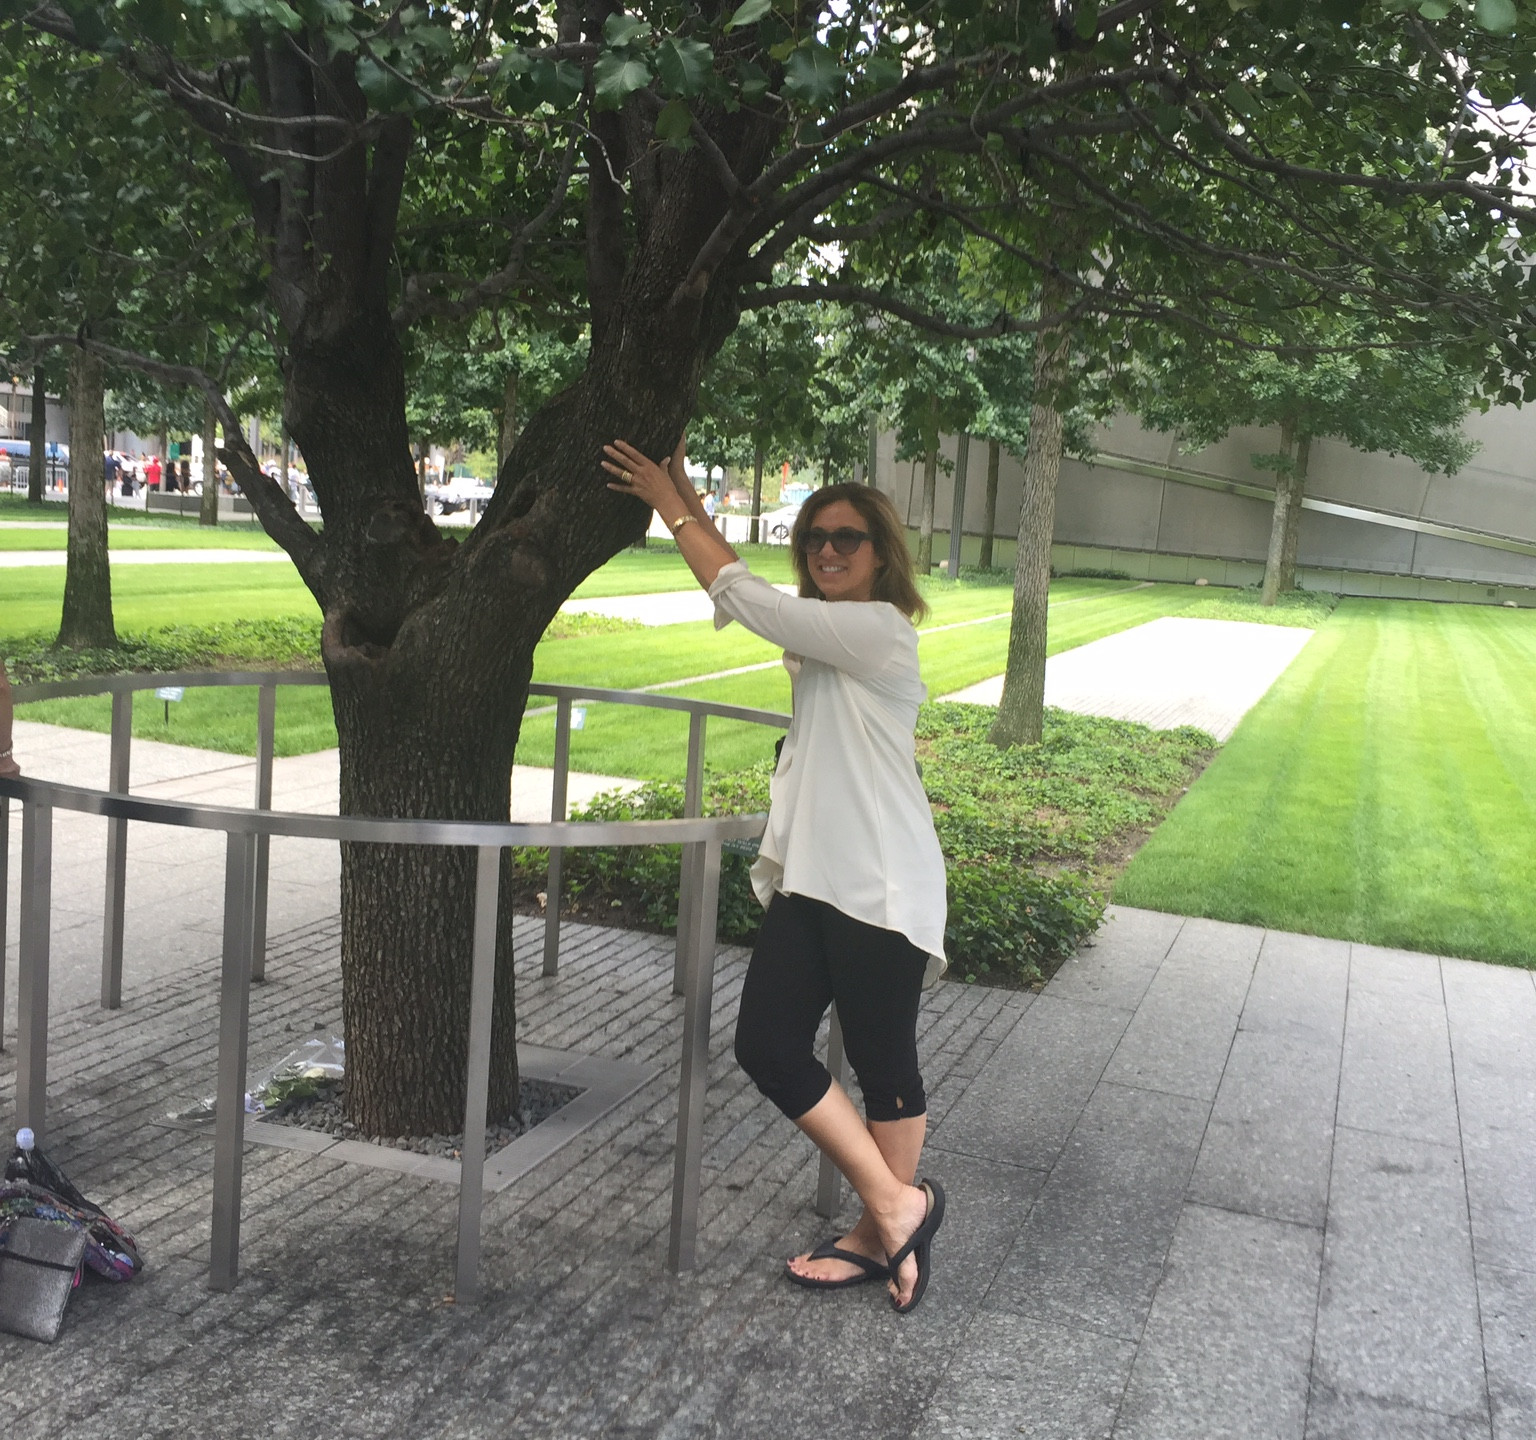 Only one tree survived 911 and I gave it a big hug.